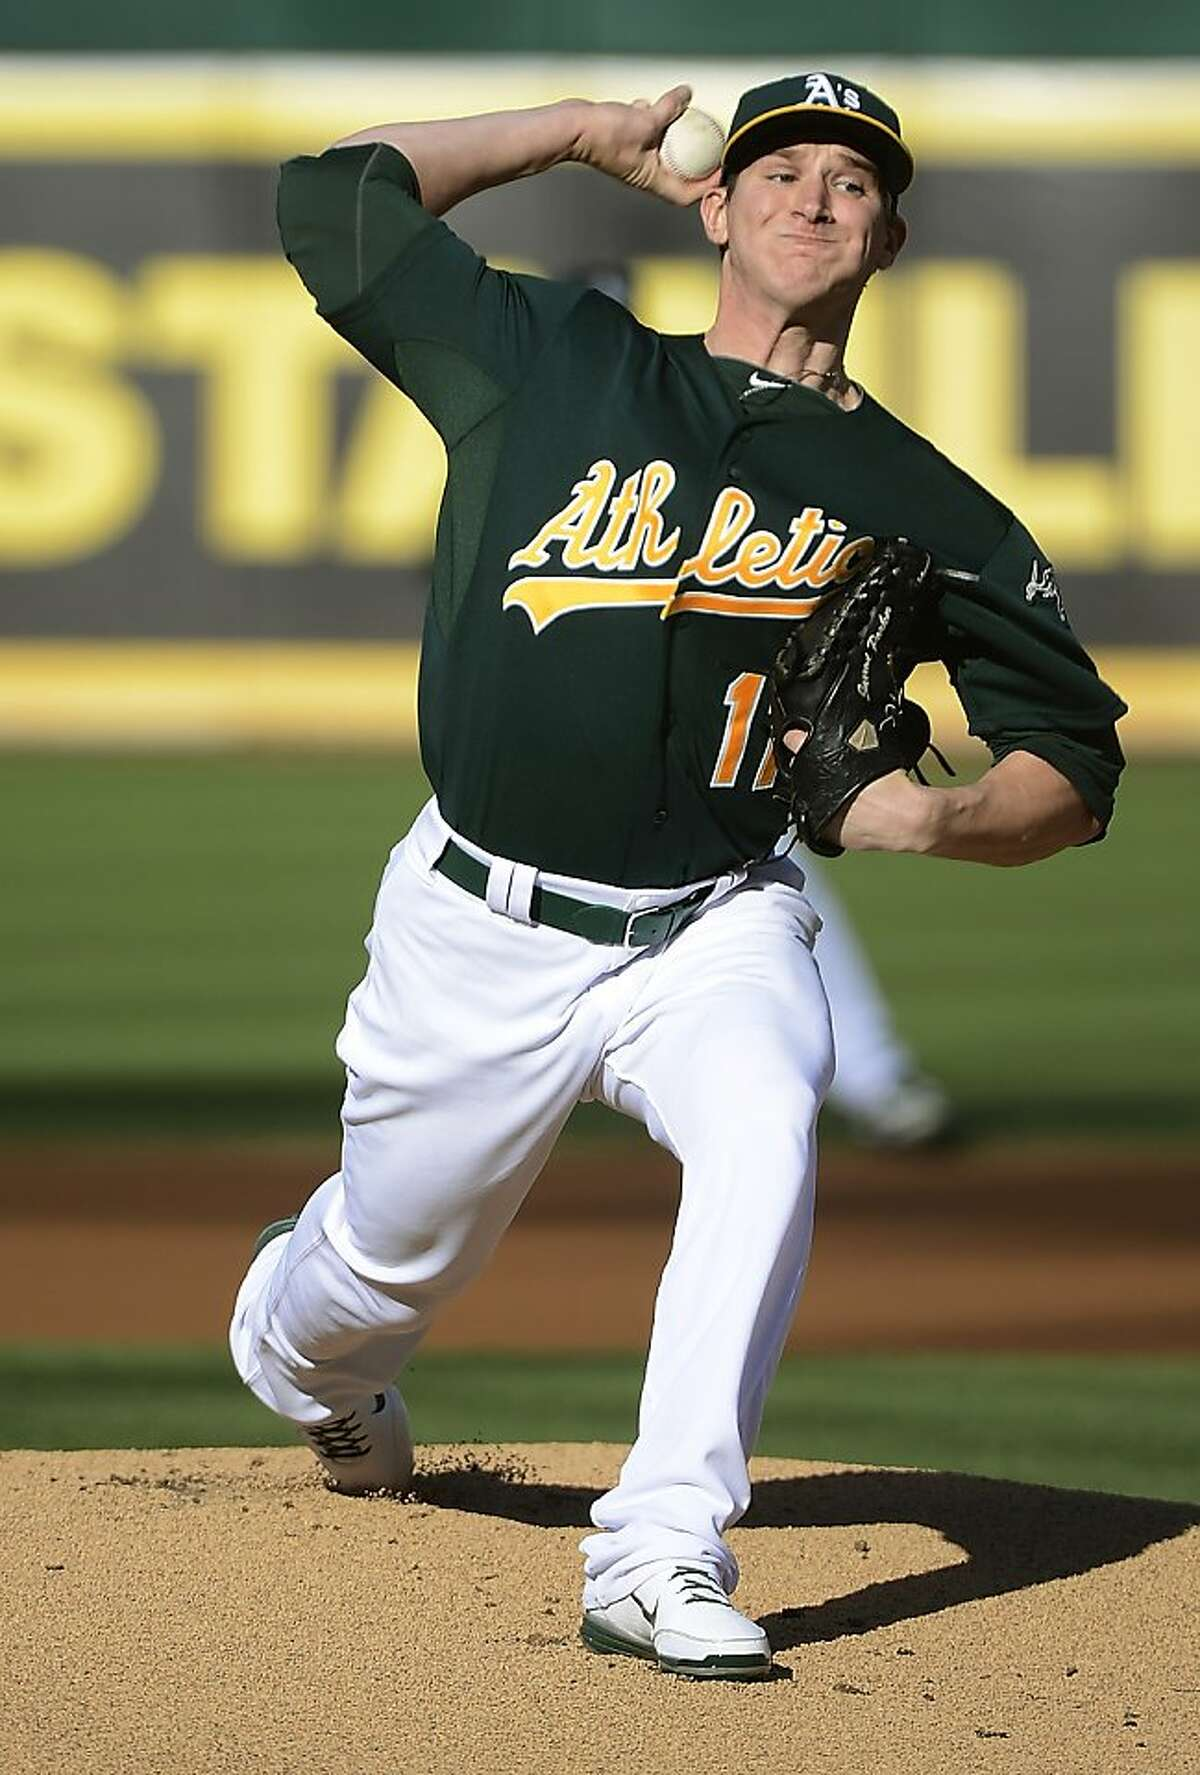 OAKLAND, CA - JULY 21: Jarrod Parker #11 of the Oakland Athletics pitches against the New York Yankees at O.co Coliseum on July 21, 2012 in Oakland, California. (Photo by Thearon W. Henderson/Getty Images)